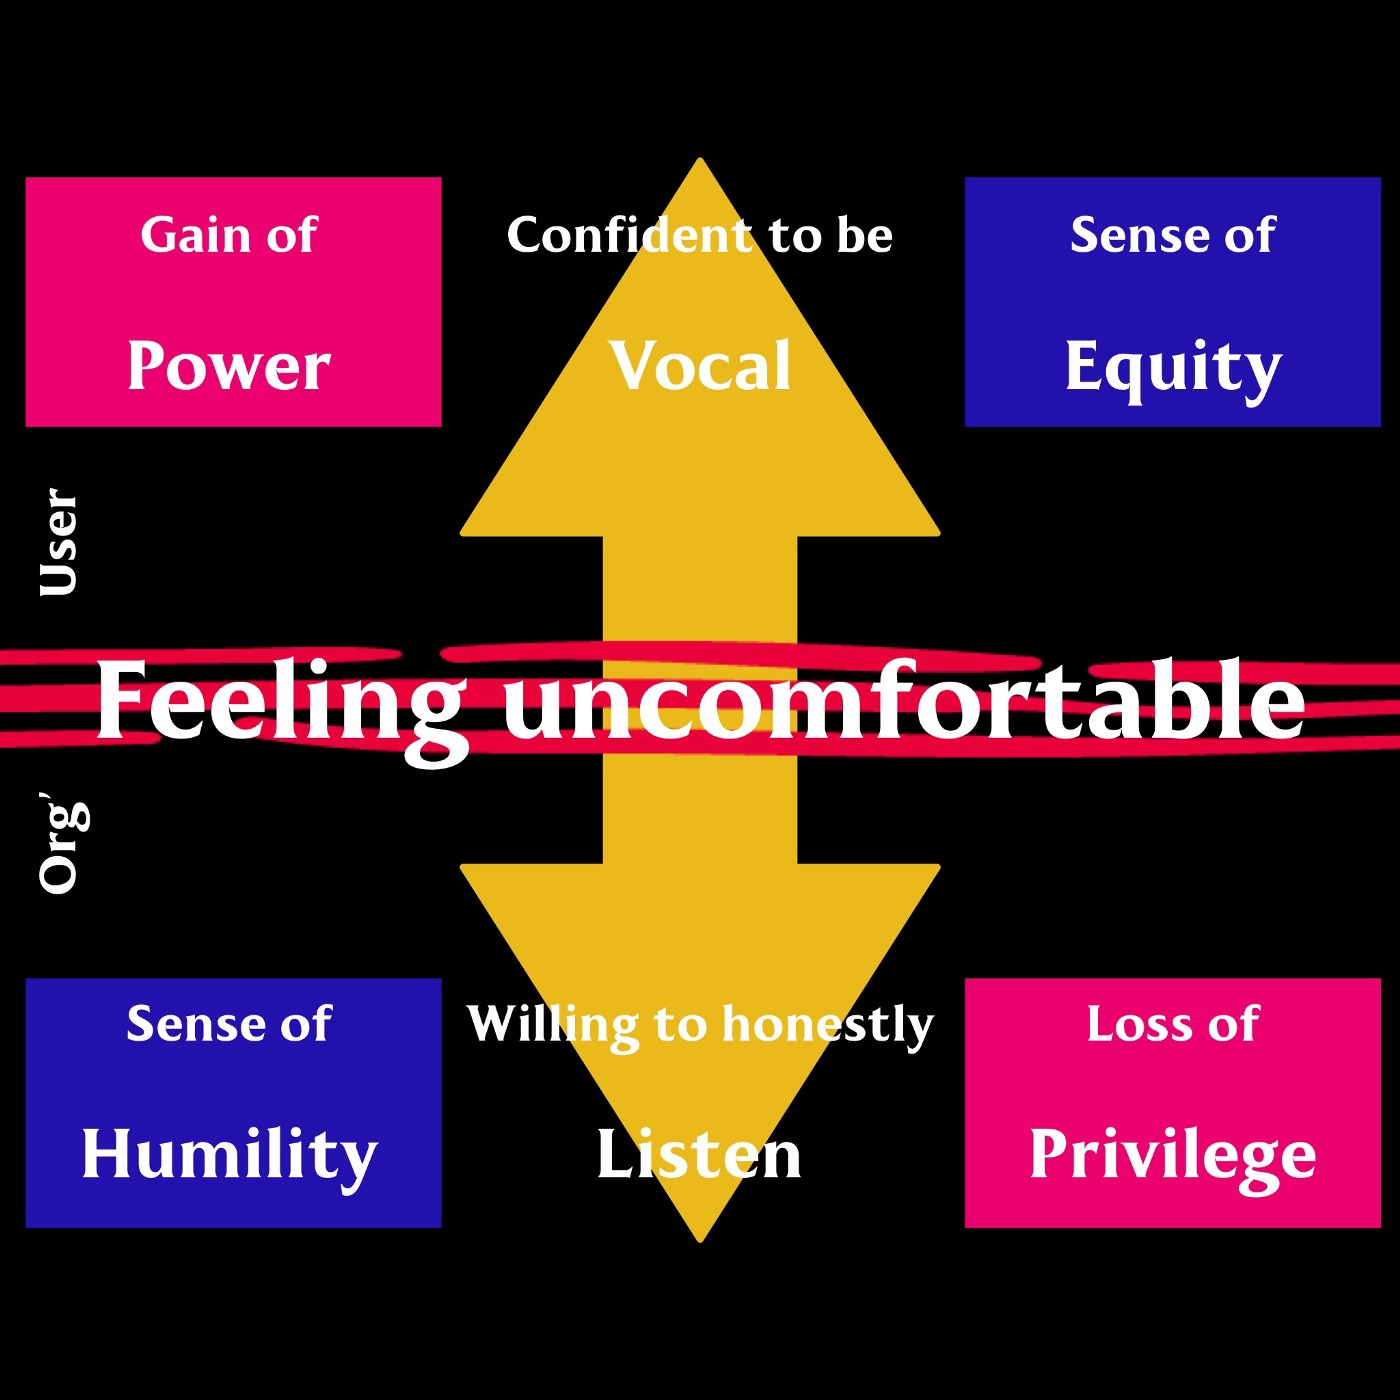 Ideas around the basic sense of feeling uncomfortable when an organisation listens to its users